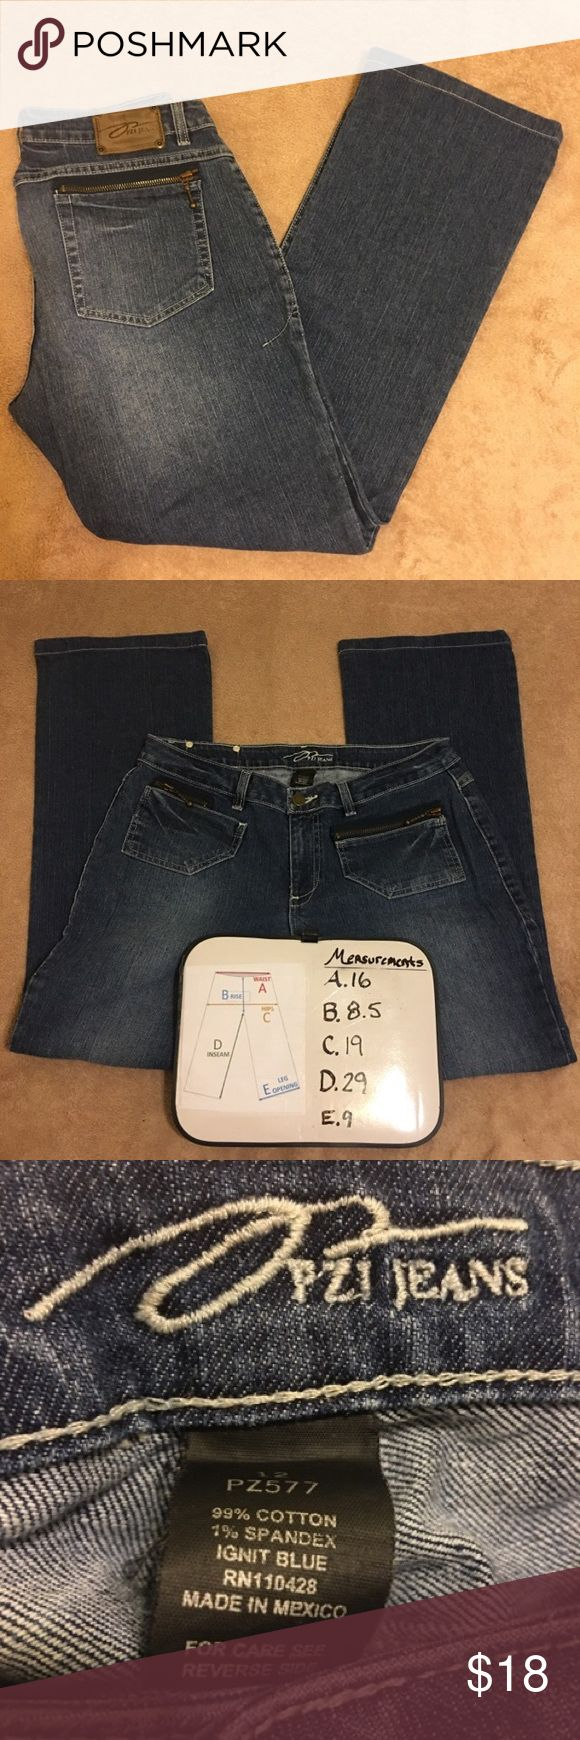 PZI Jeans Great Condition! PZI Jeans Great Condition! There are no tears, flaws, or stains. PZI Jeans